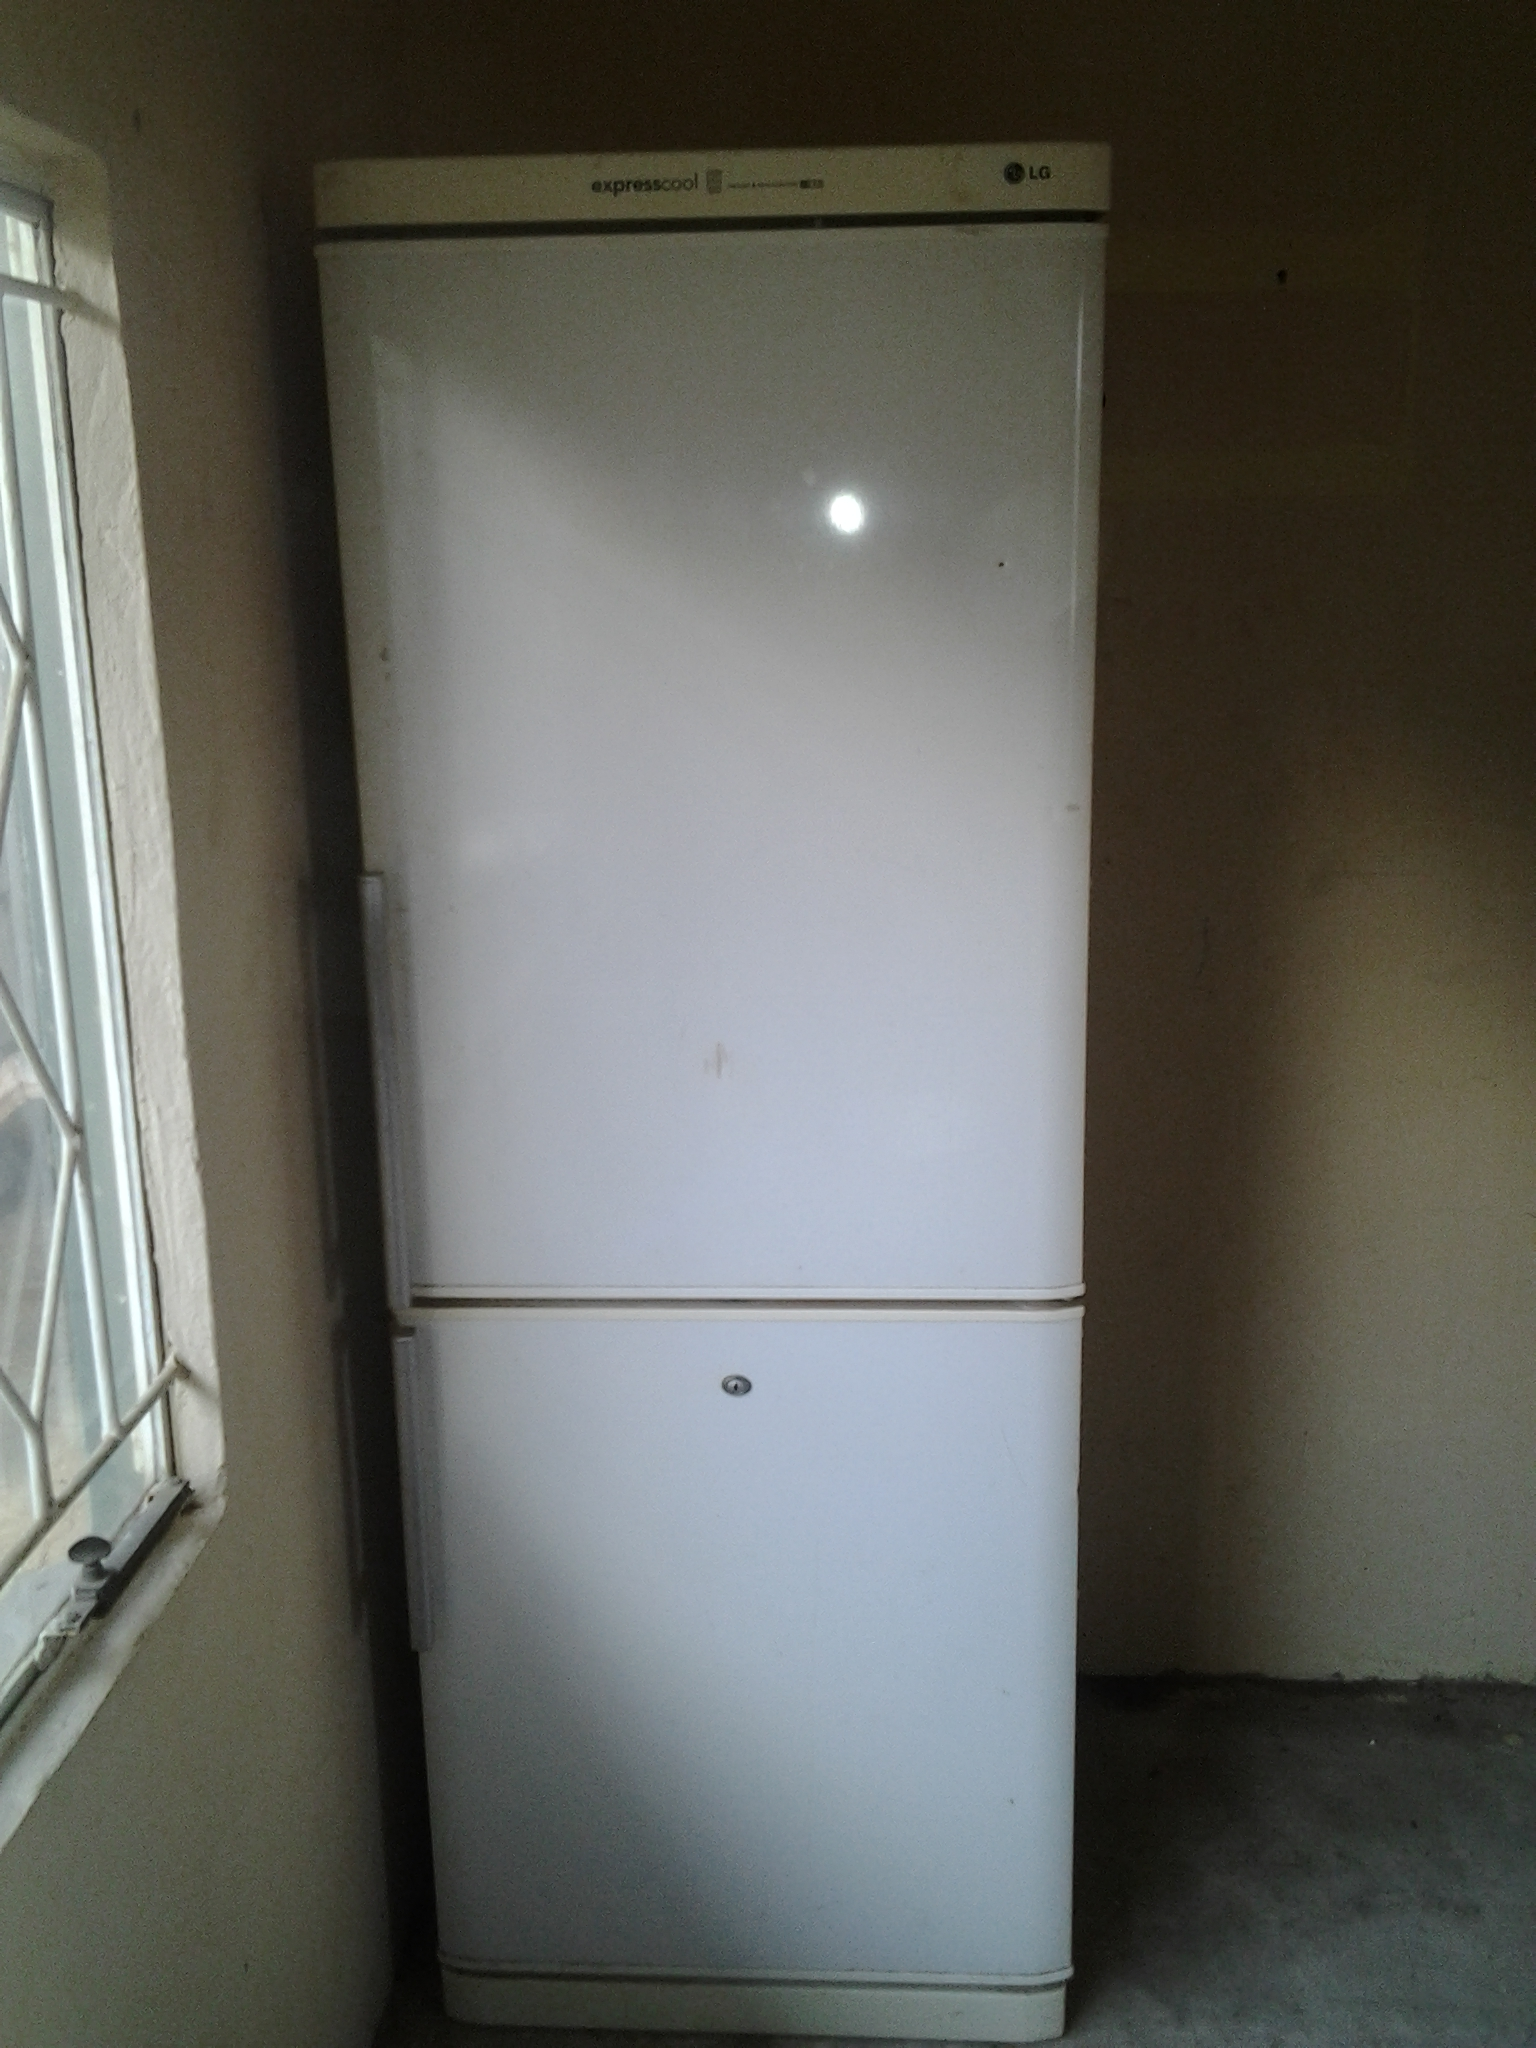 LG Express Cooler Fridge/Freezer